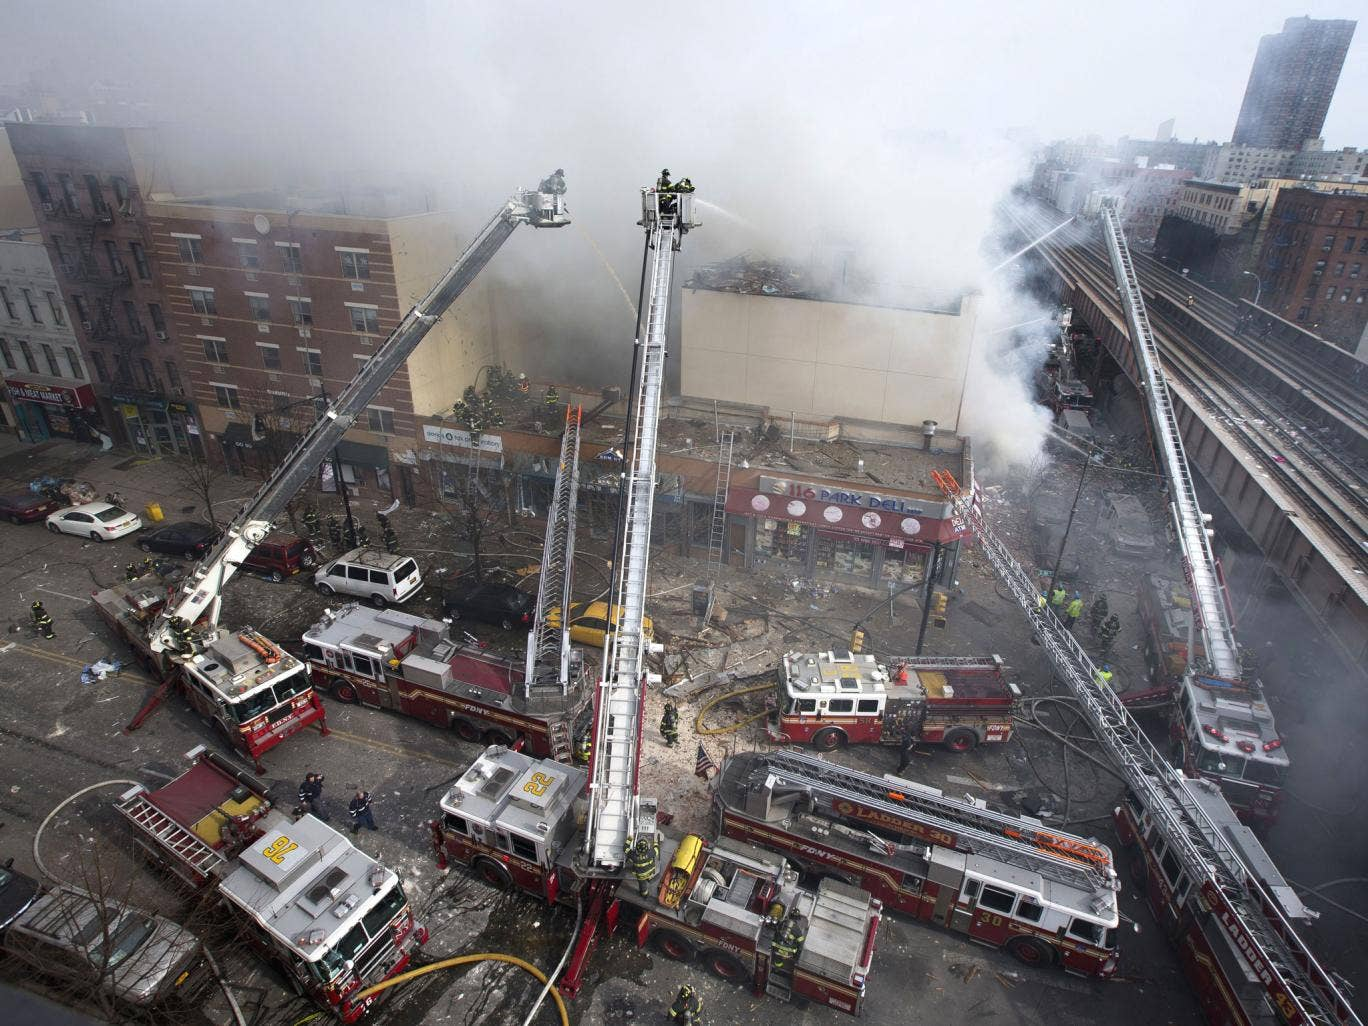 Firefighters battle a fire after a building collapse in the East Harlem neighborhood of New York